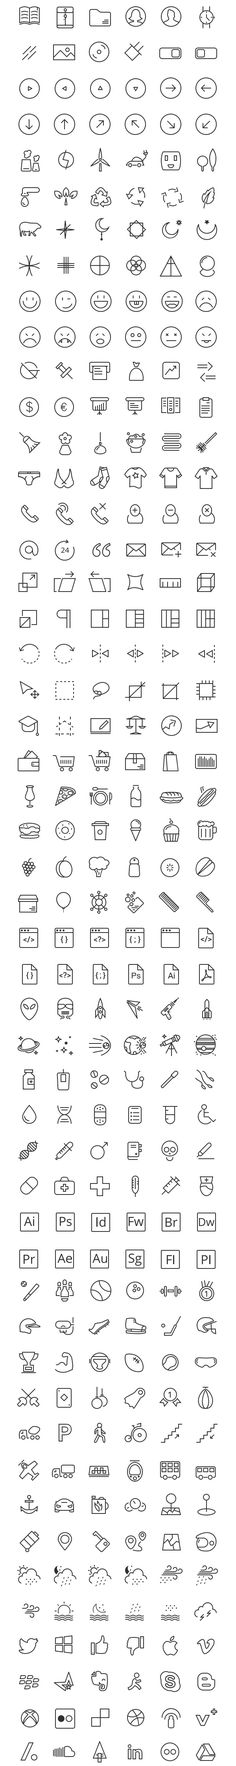 Here's a new set of 300 free icons from RetinaIcon collection made available exclusively for GraphicBurger. Web Design, Icon Design, Logo Design, Graphic Design, Symbol Design, Icones Cv, Ios Icon, Affinity Designer, Icon Collection